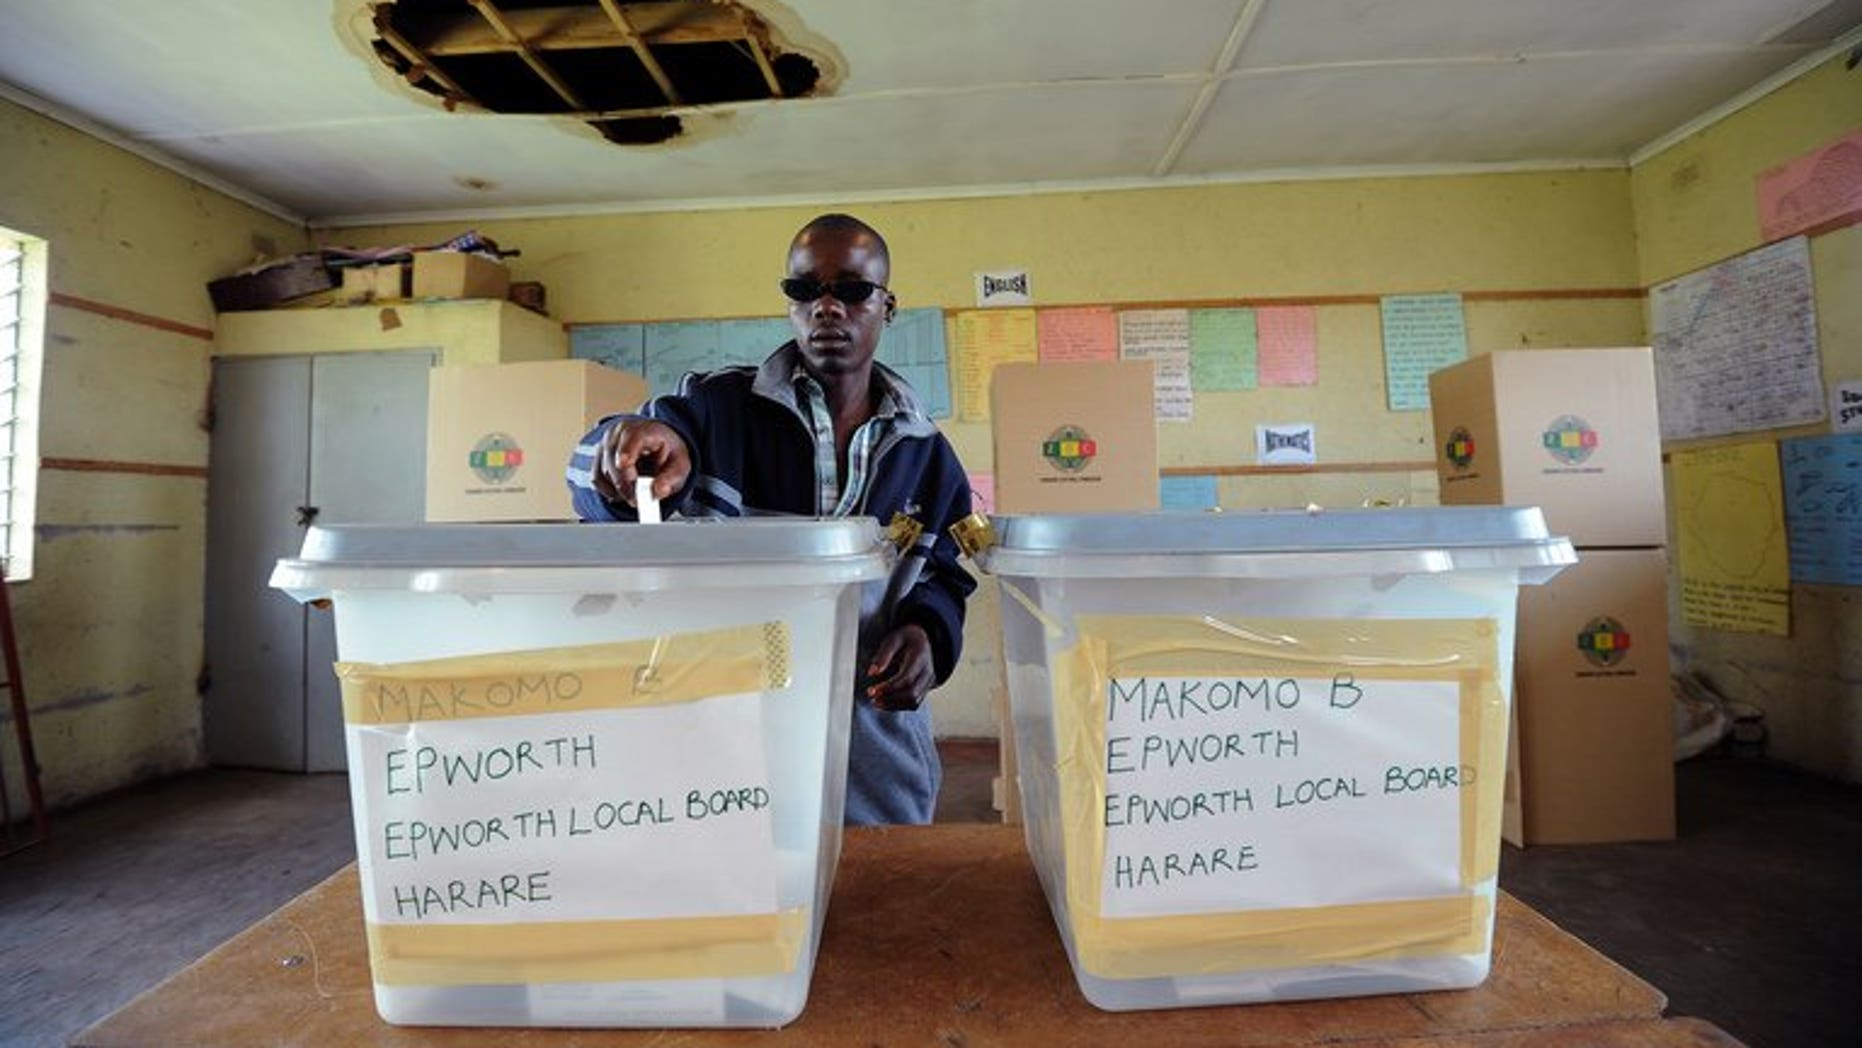 Zimbabweans cast their vote in a referendum on a new constitution in Epwath on March 16, 2013. Zimbabwe security forces have begun voting in an early election, with delays reported due to the lack of ballot papers just over two weeks before crucial presidential polls.